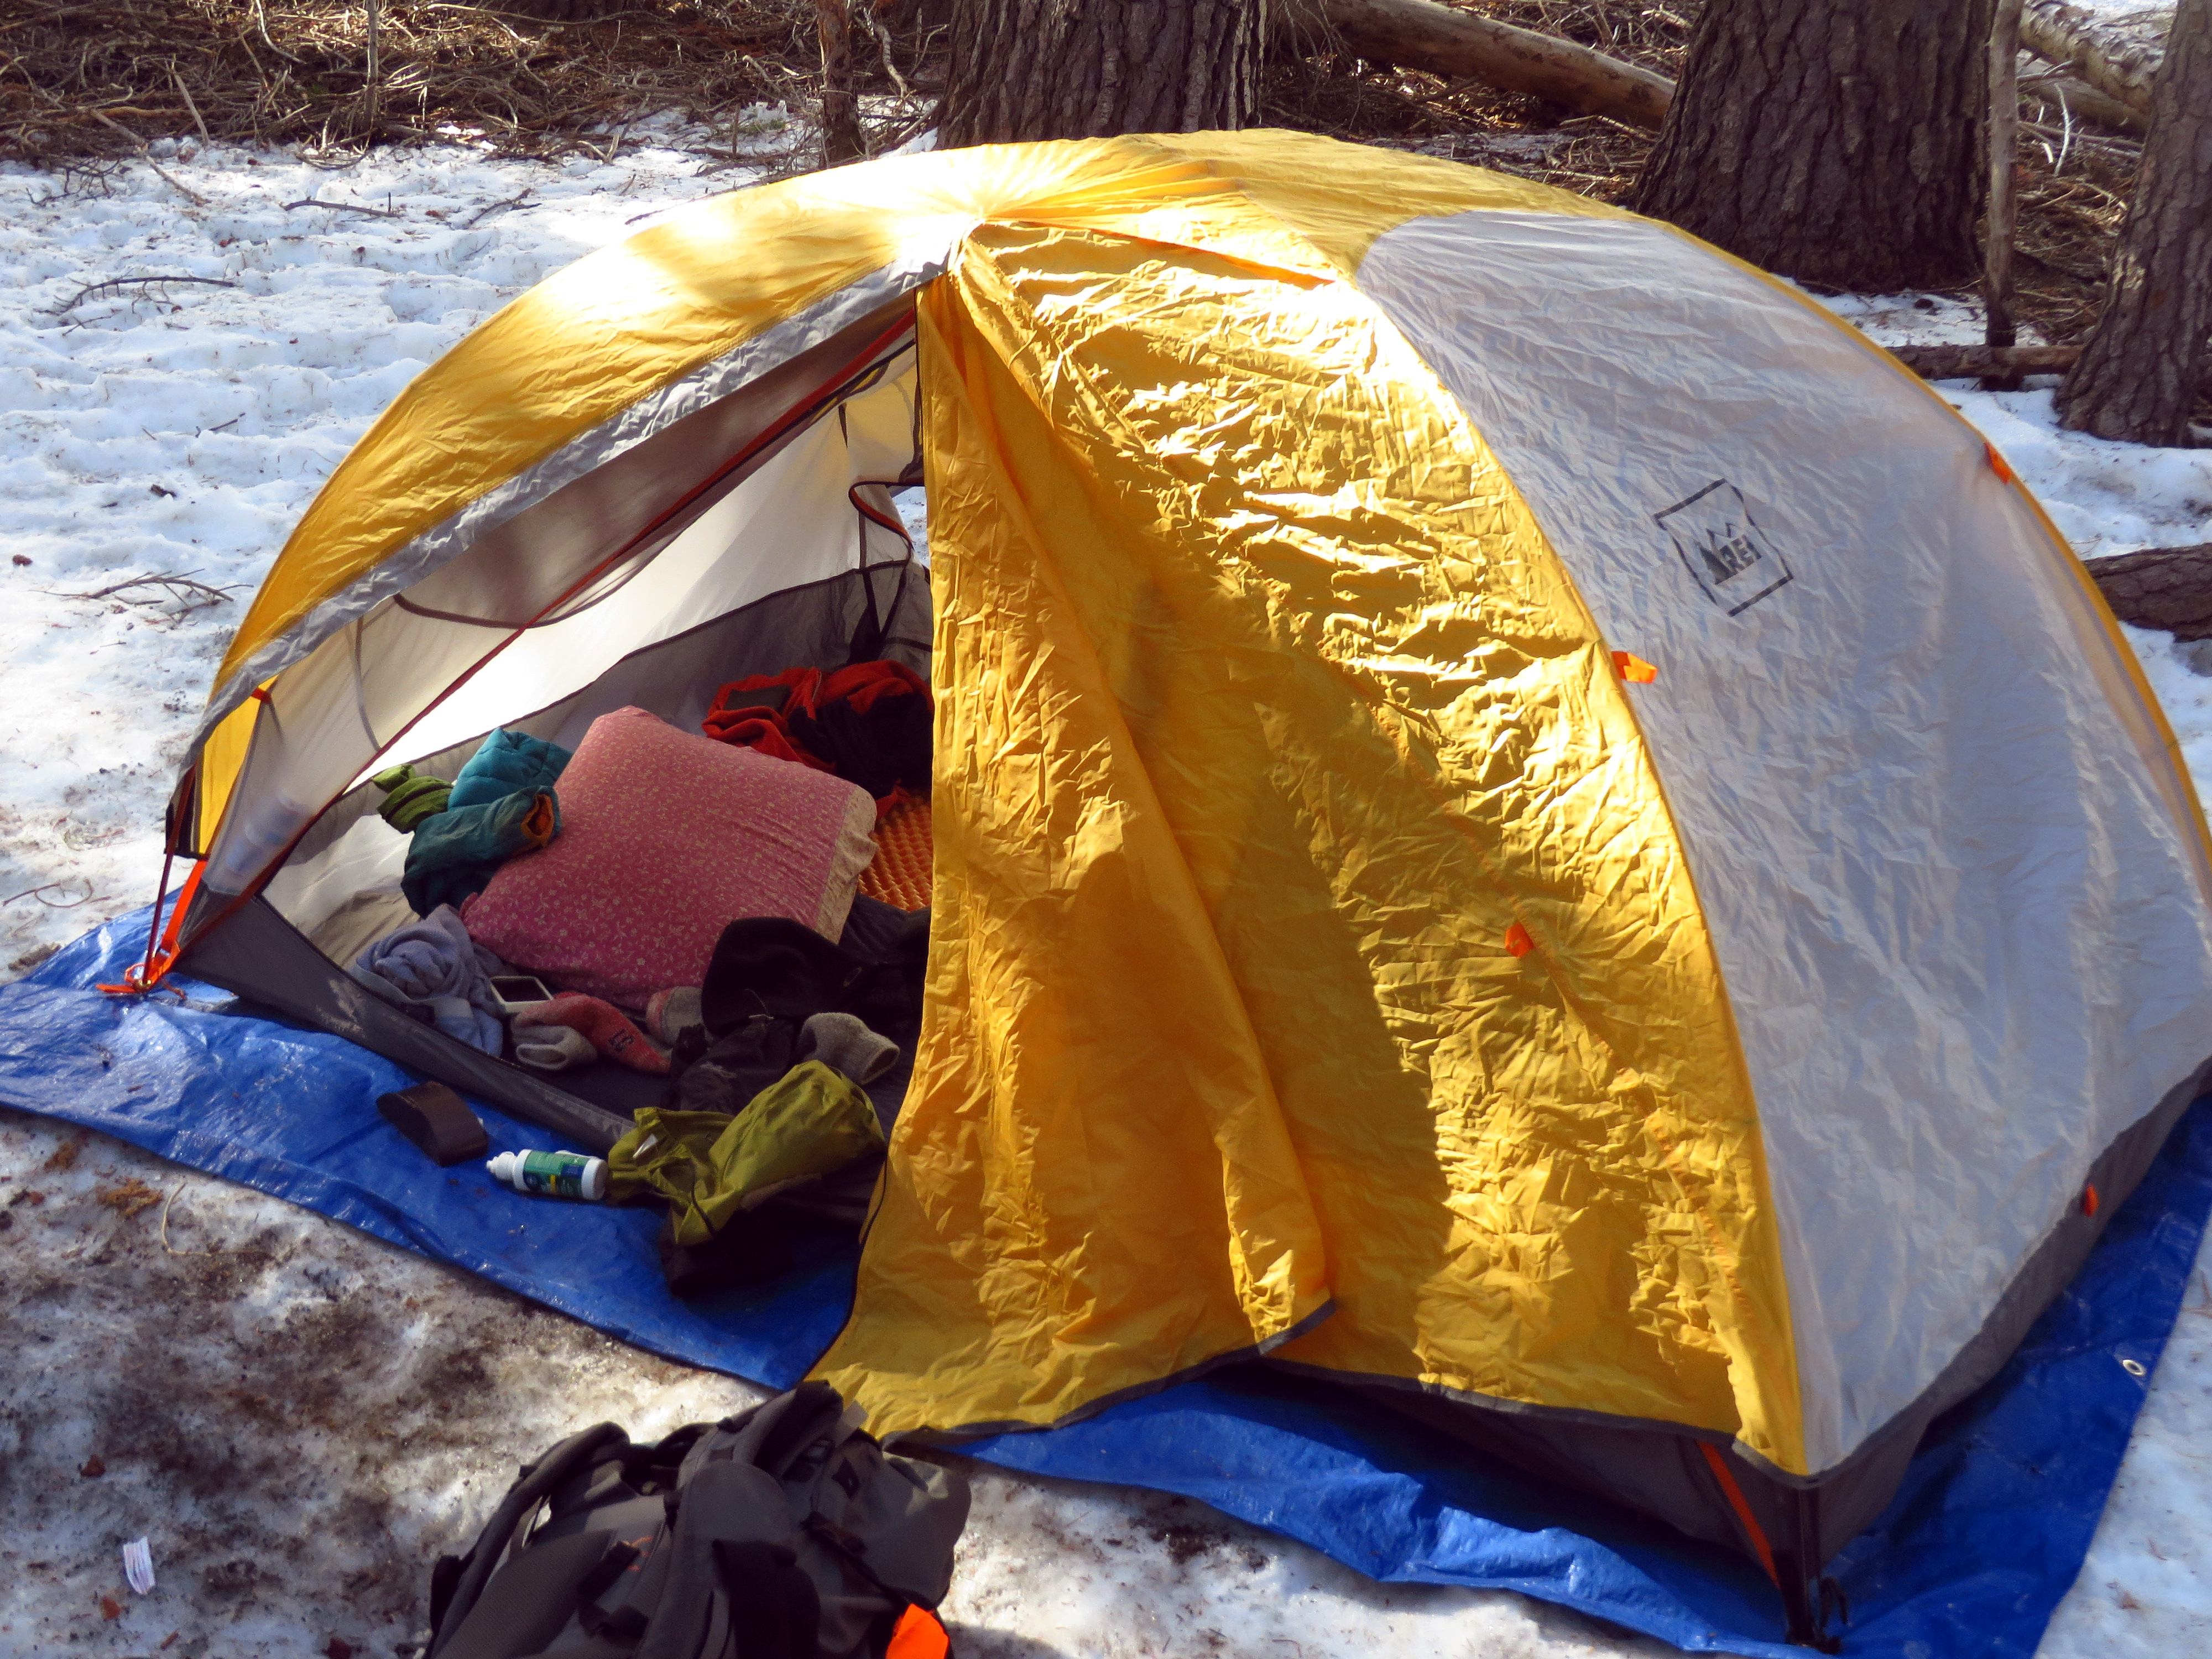 Laugh if you must; but I've never regretted carrying a full-size pillow on a backpacking trip.    (photo by D. Speredelozzi)